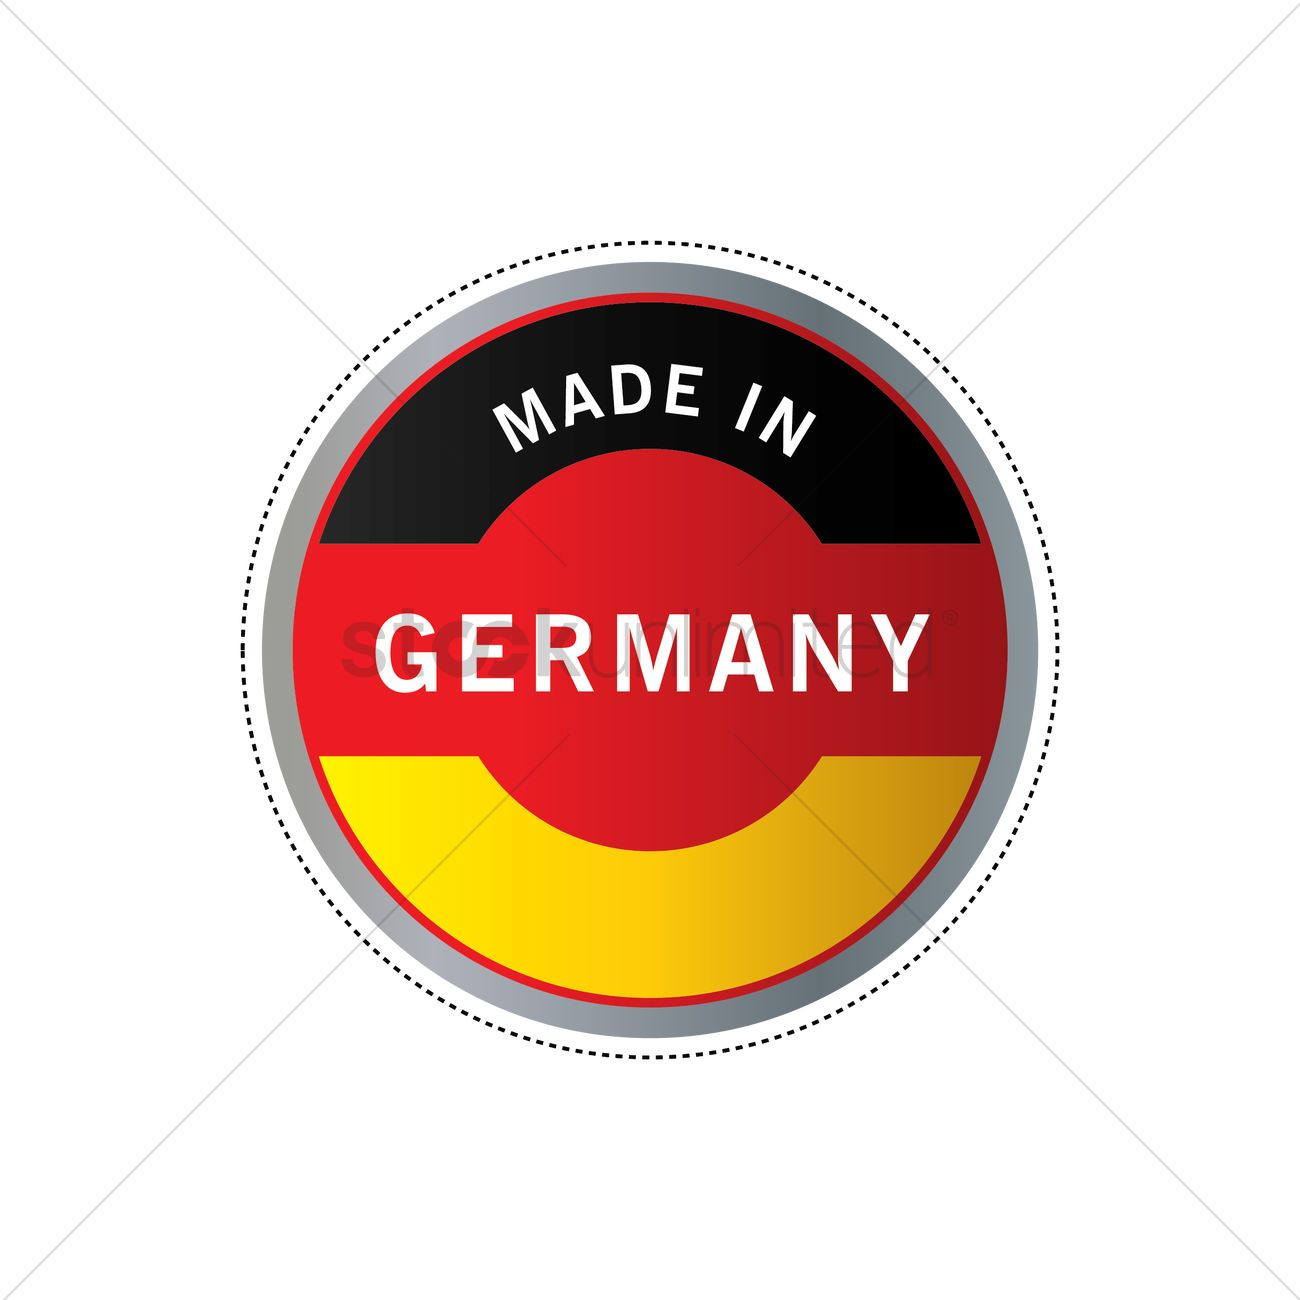 Made In Germany Label Design Vector Image 1980427 Stockunlimited